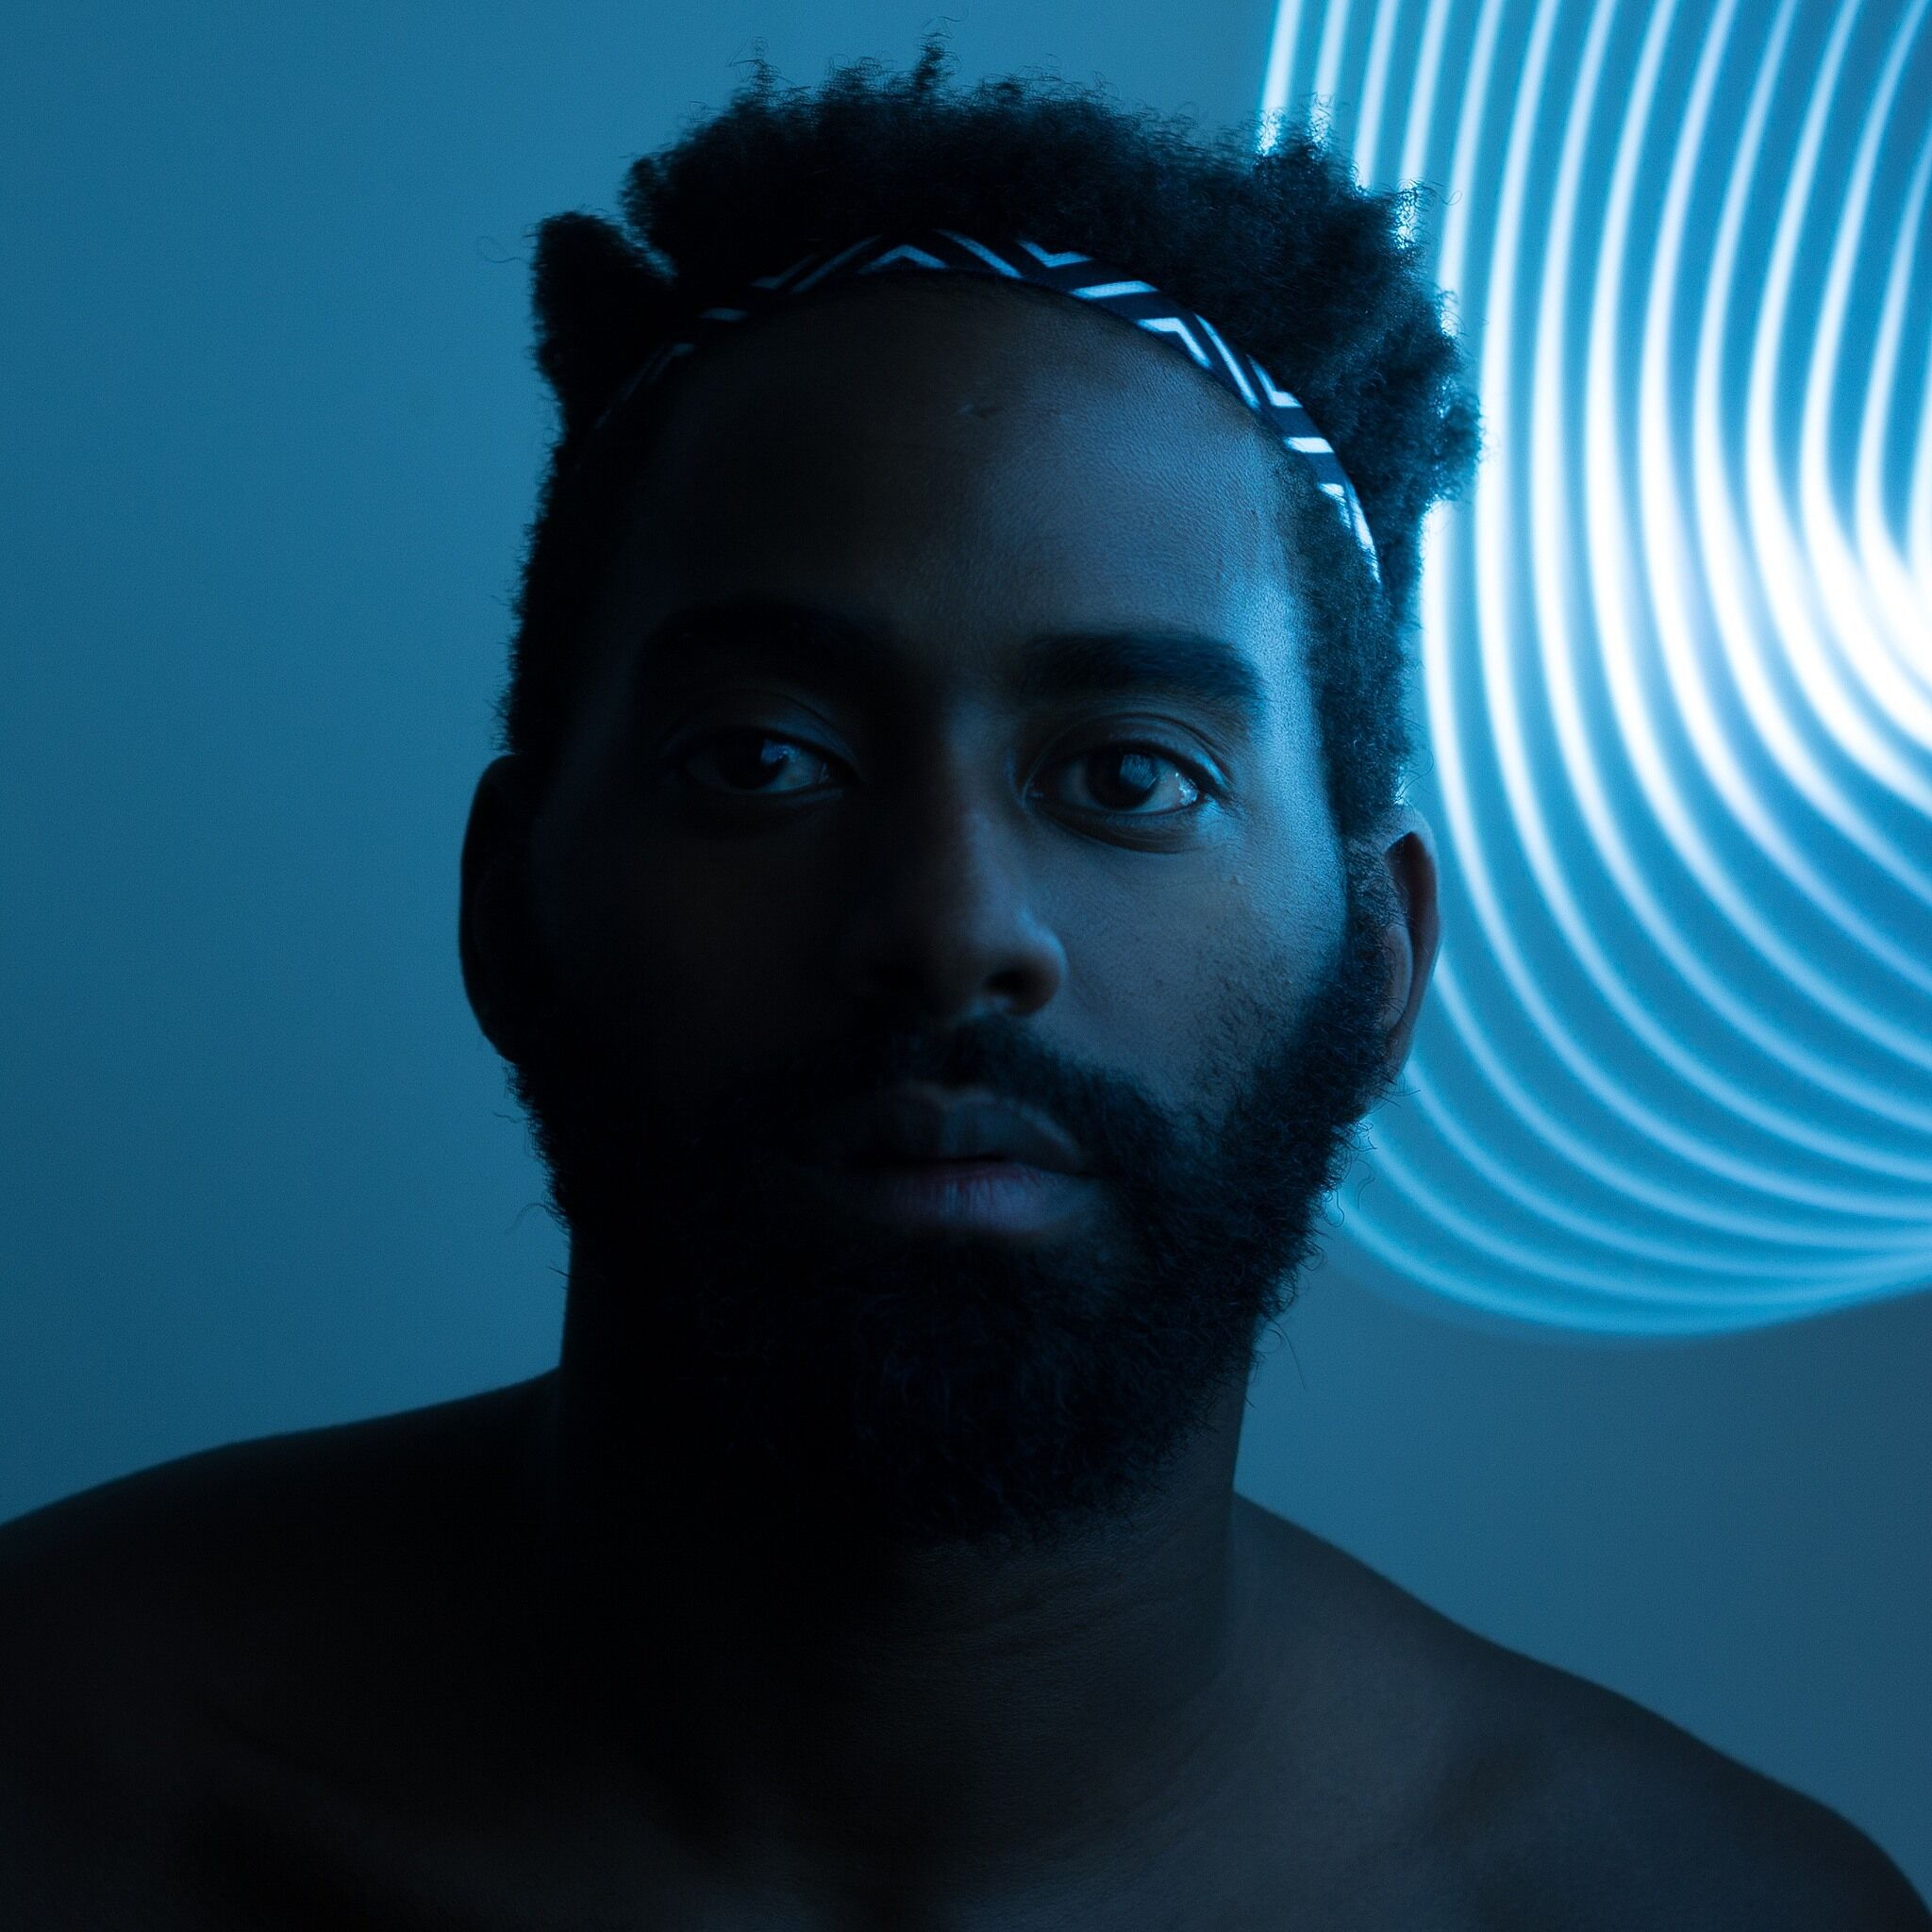 A close up photograph of a person in blue lighting.